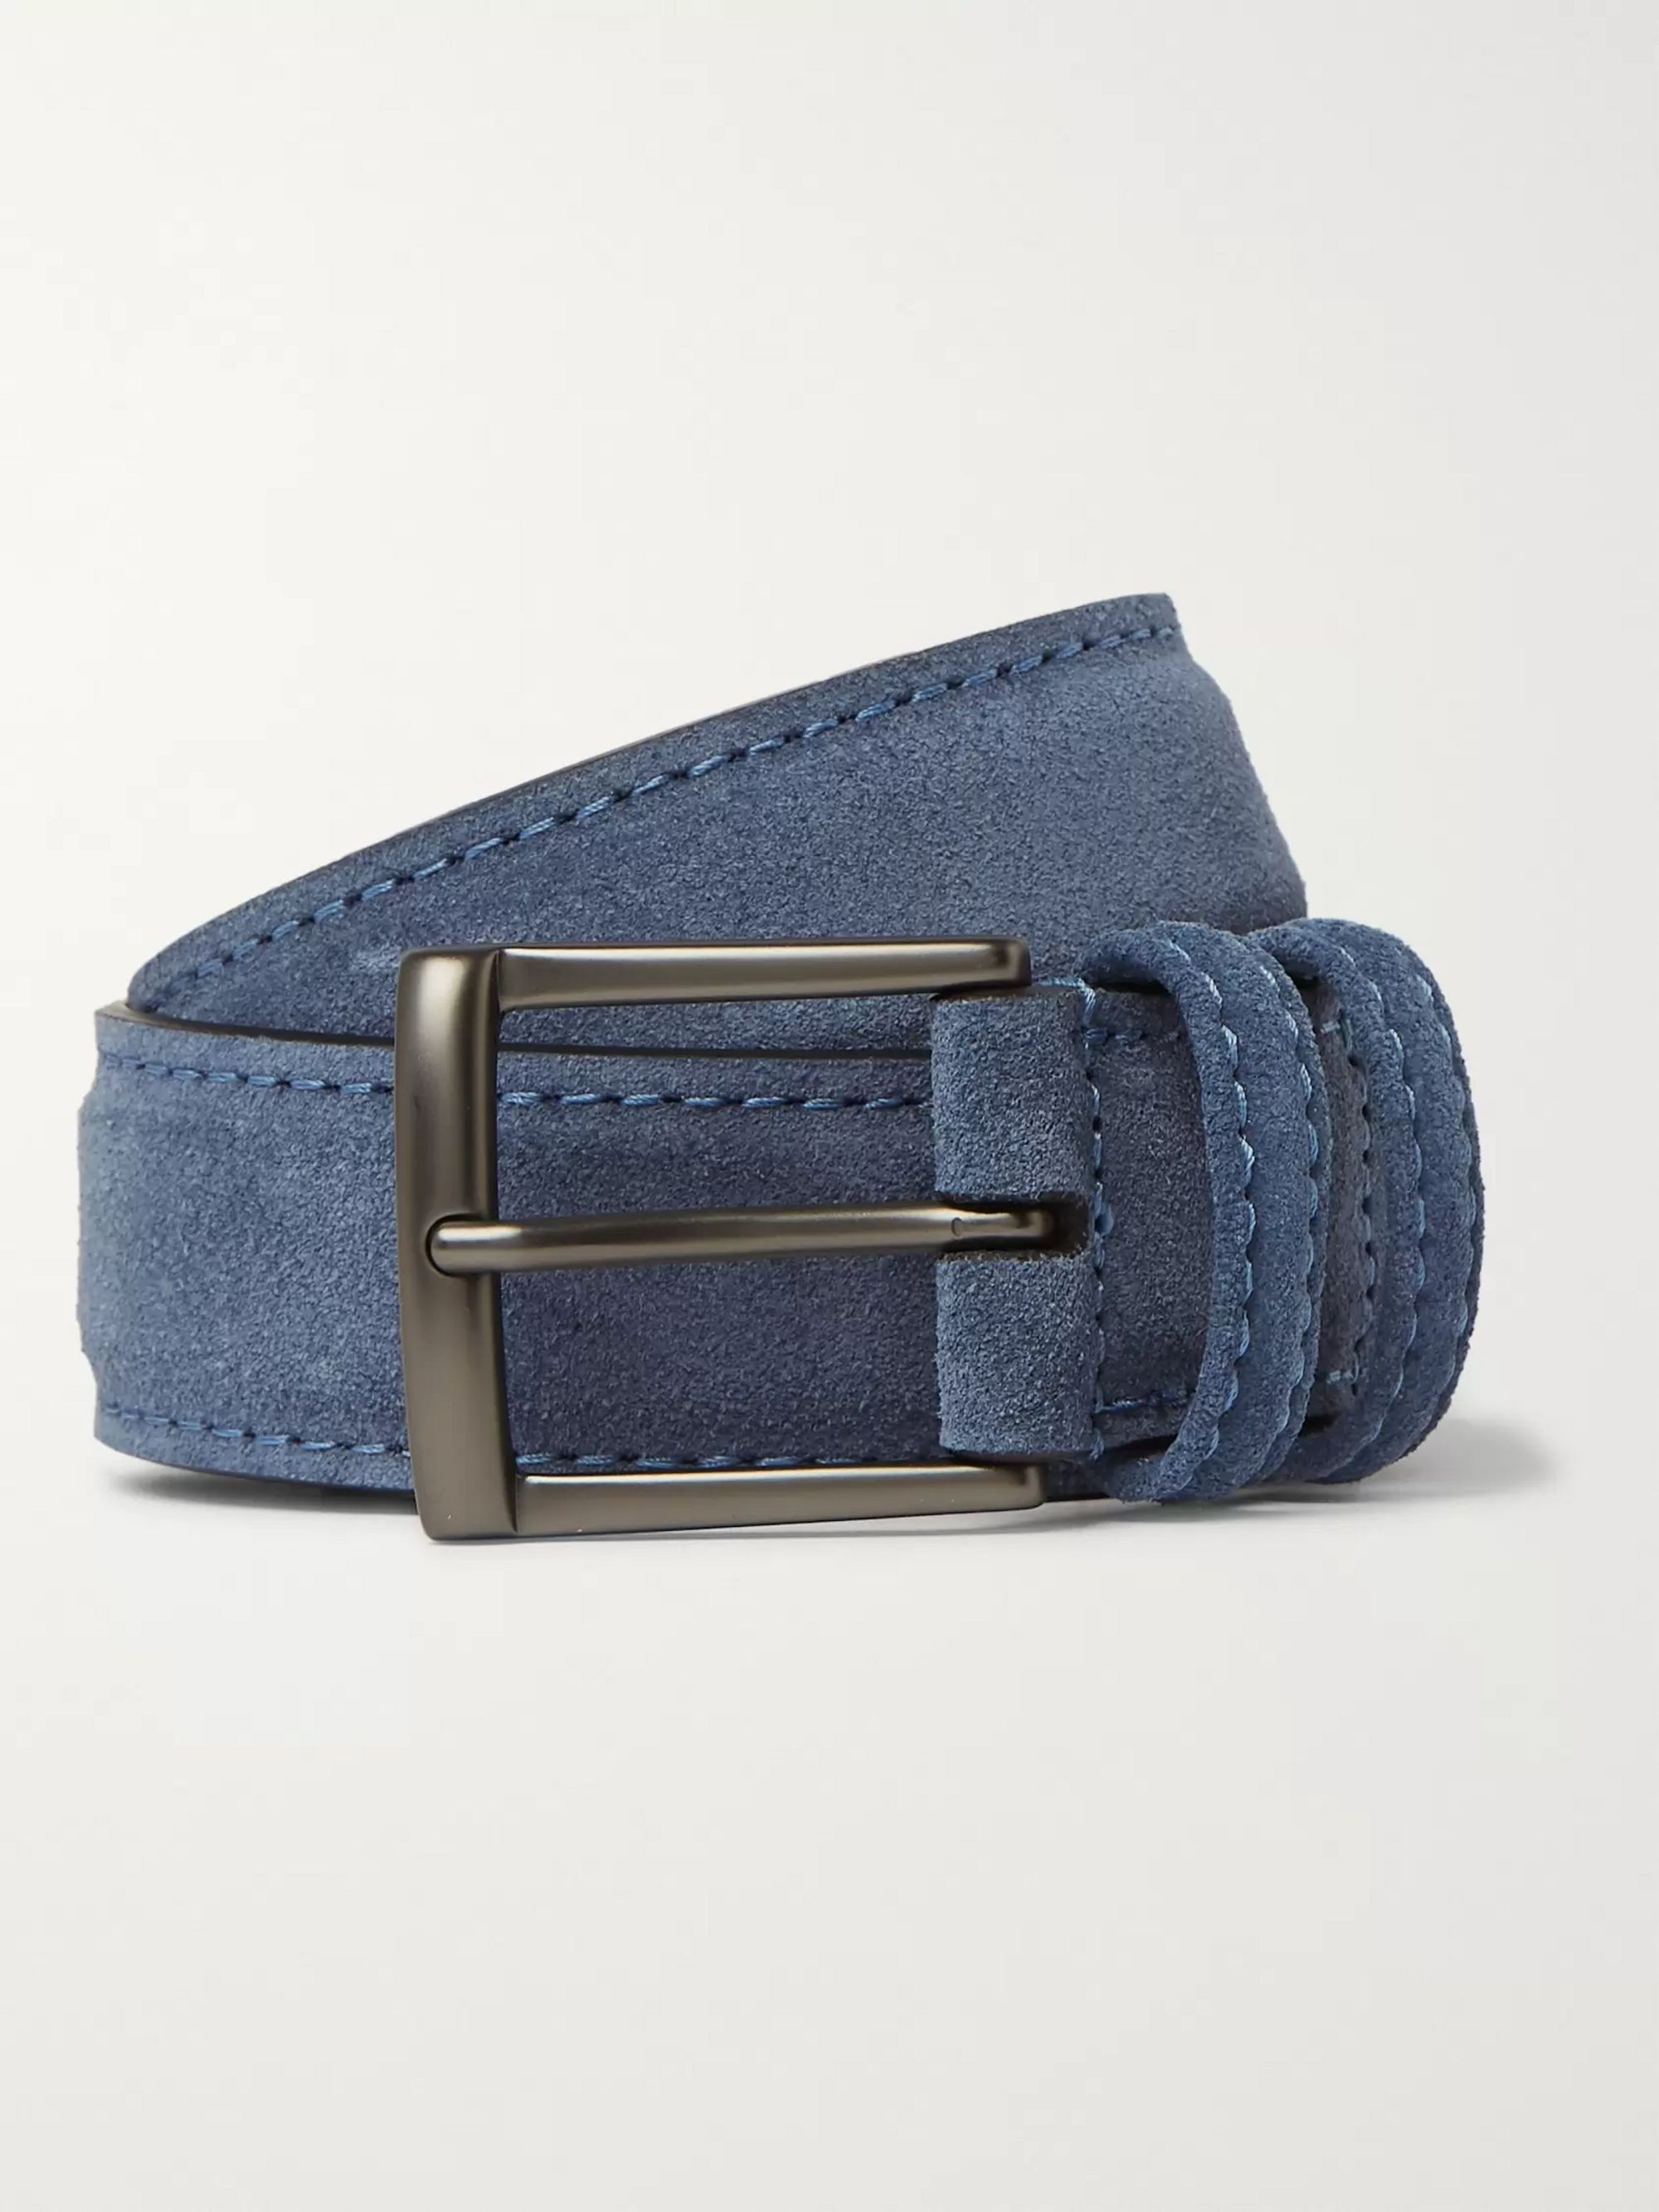 3.5cm Blue Suede Belt by Anderson's